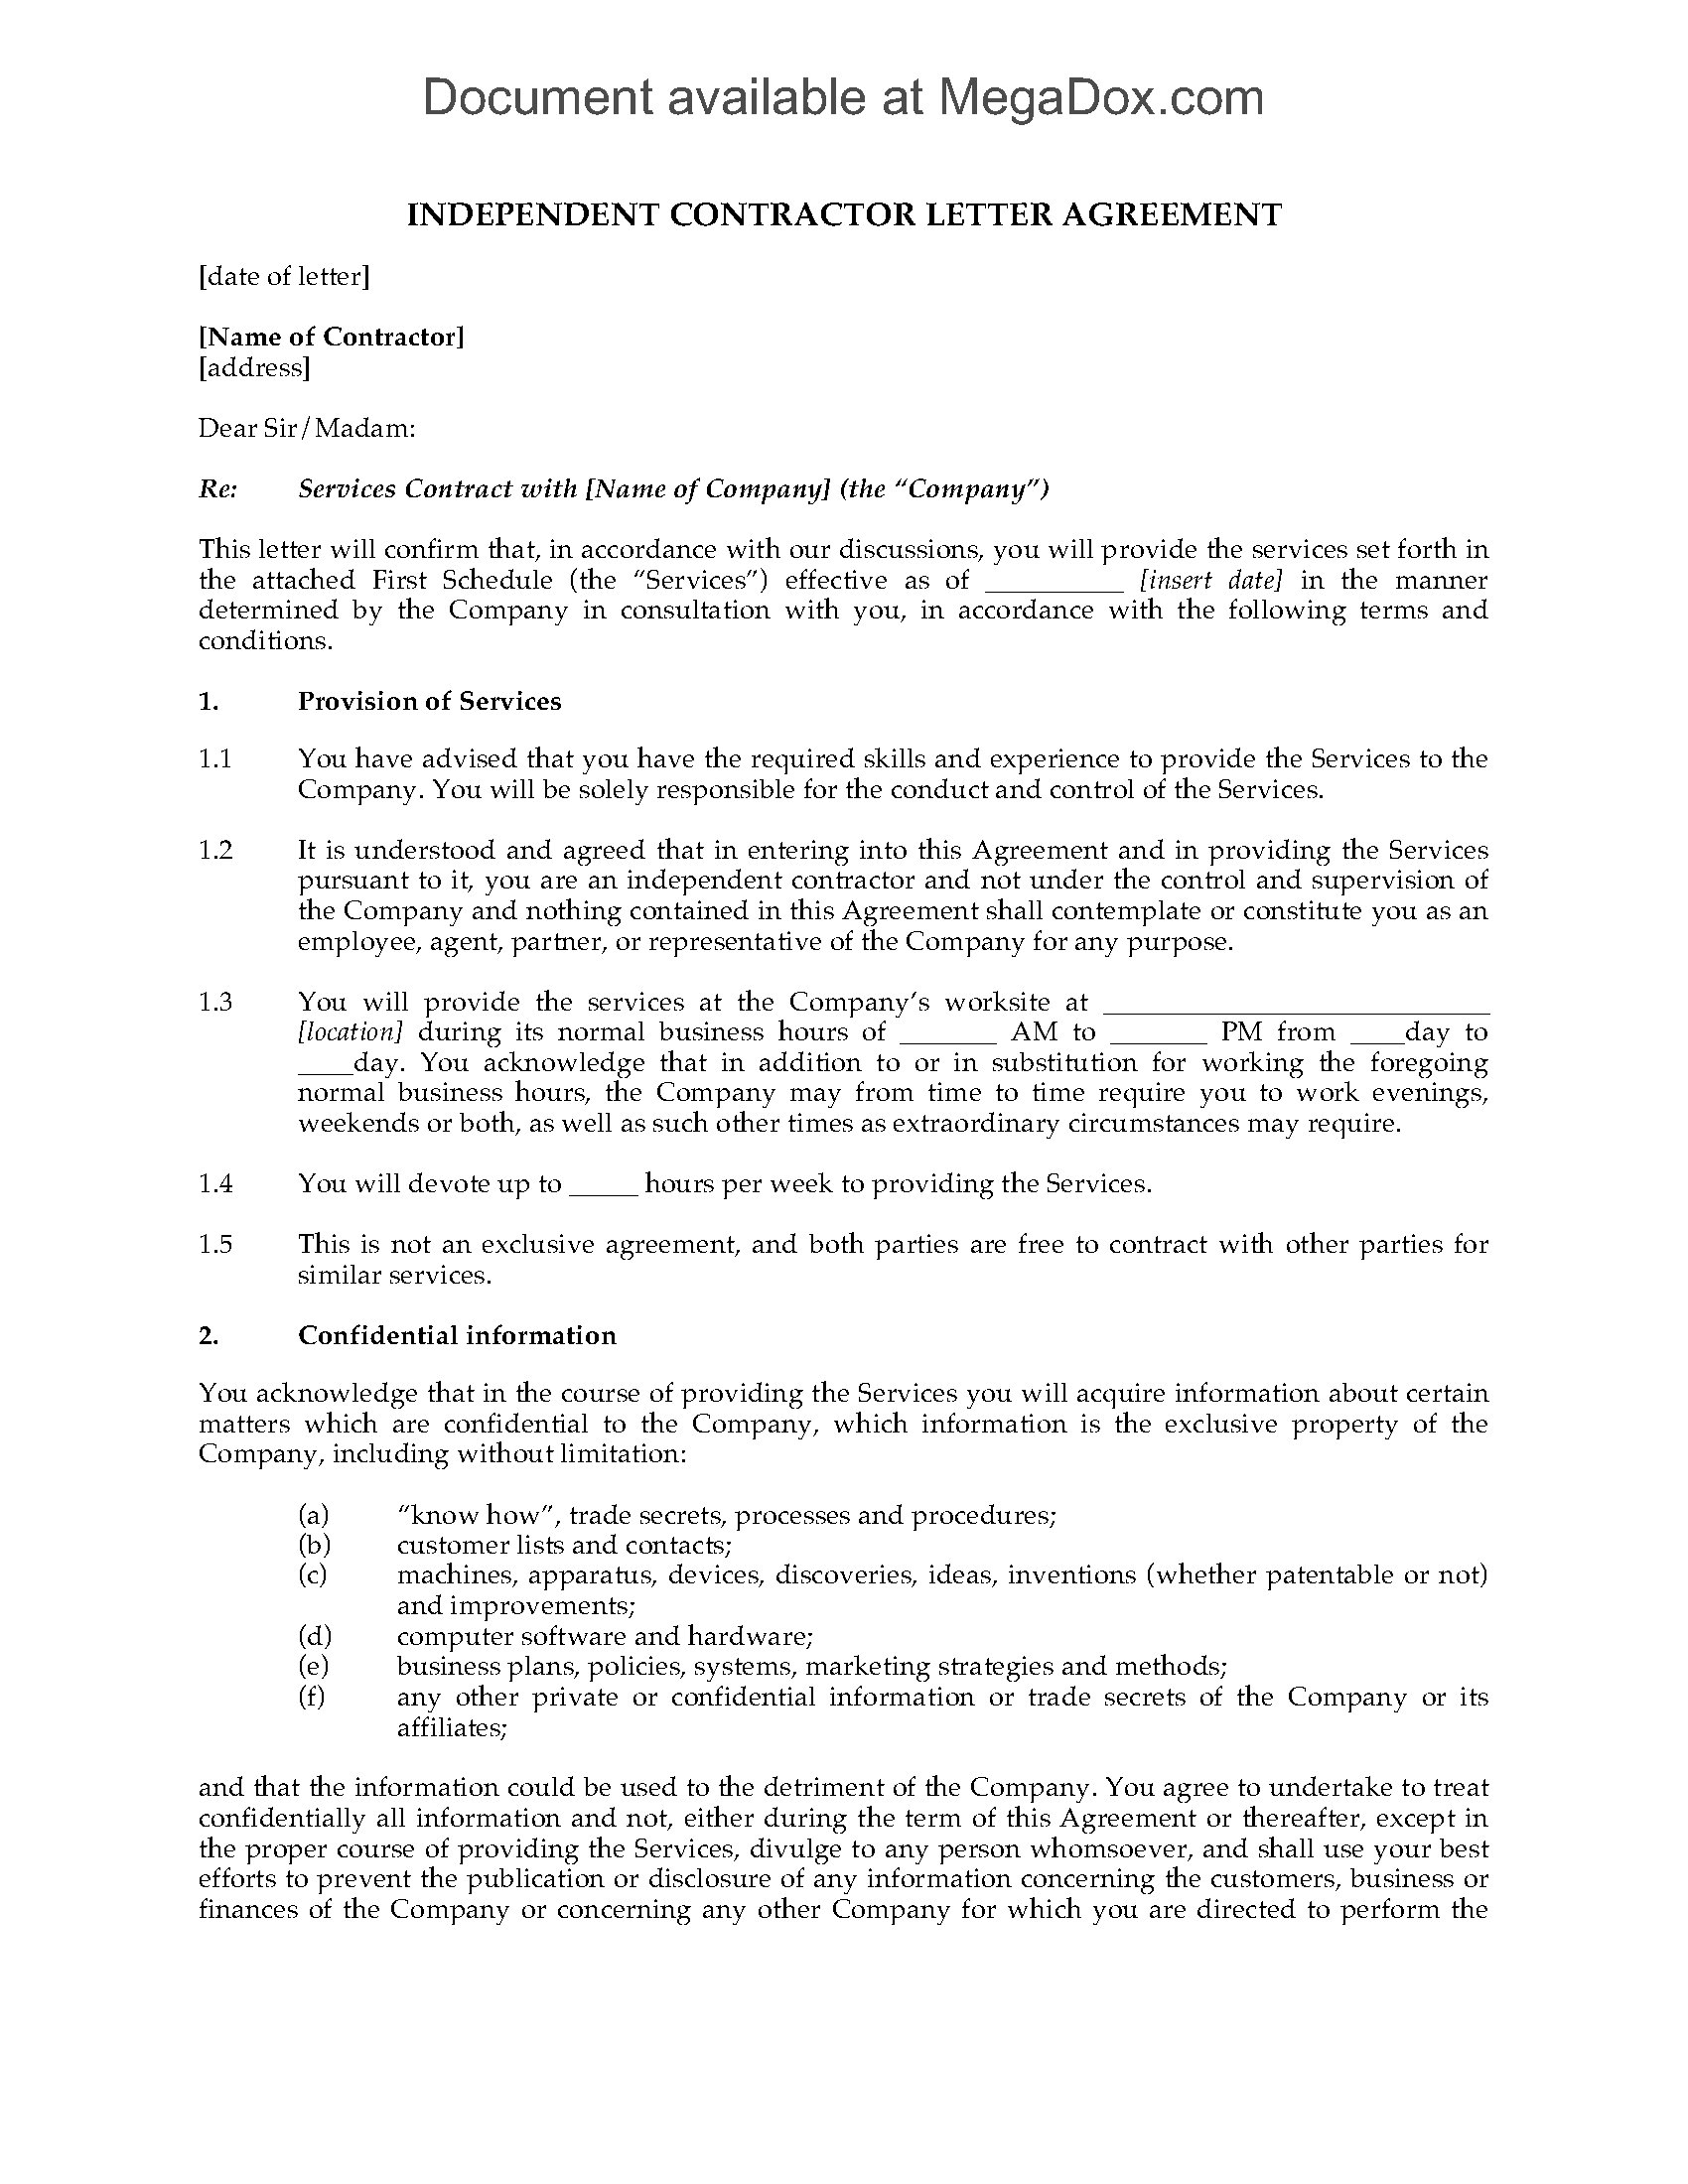 UK Independent Contractor Agreement Form